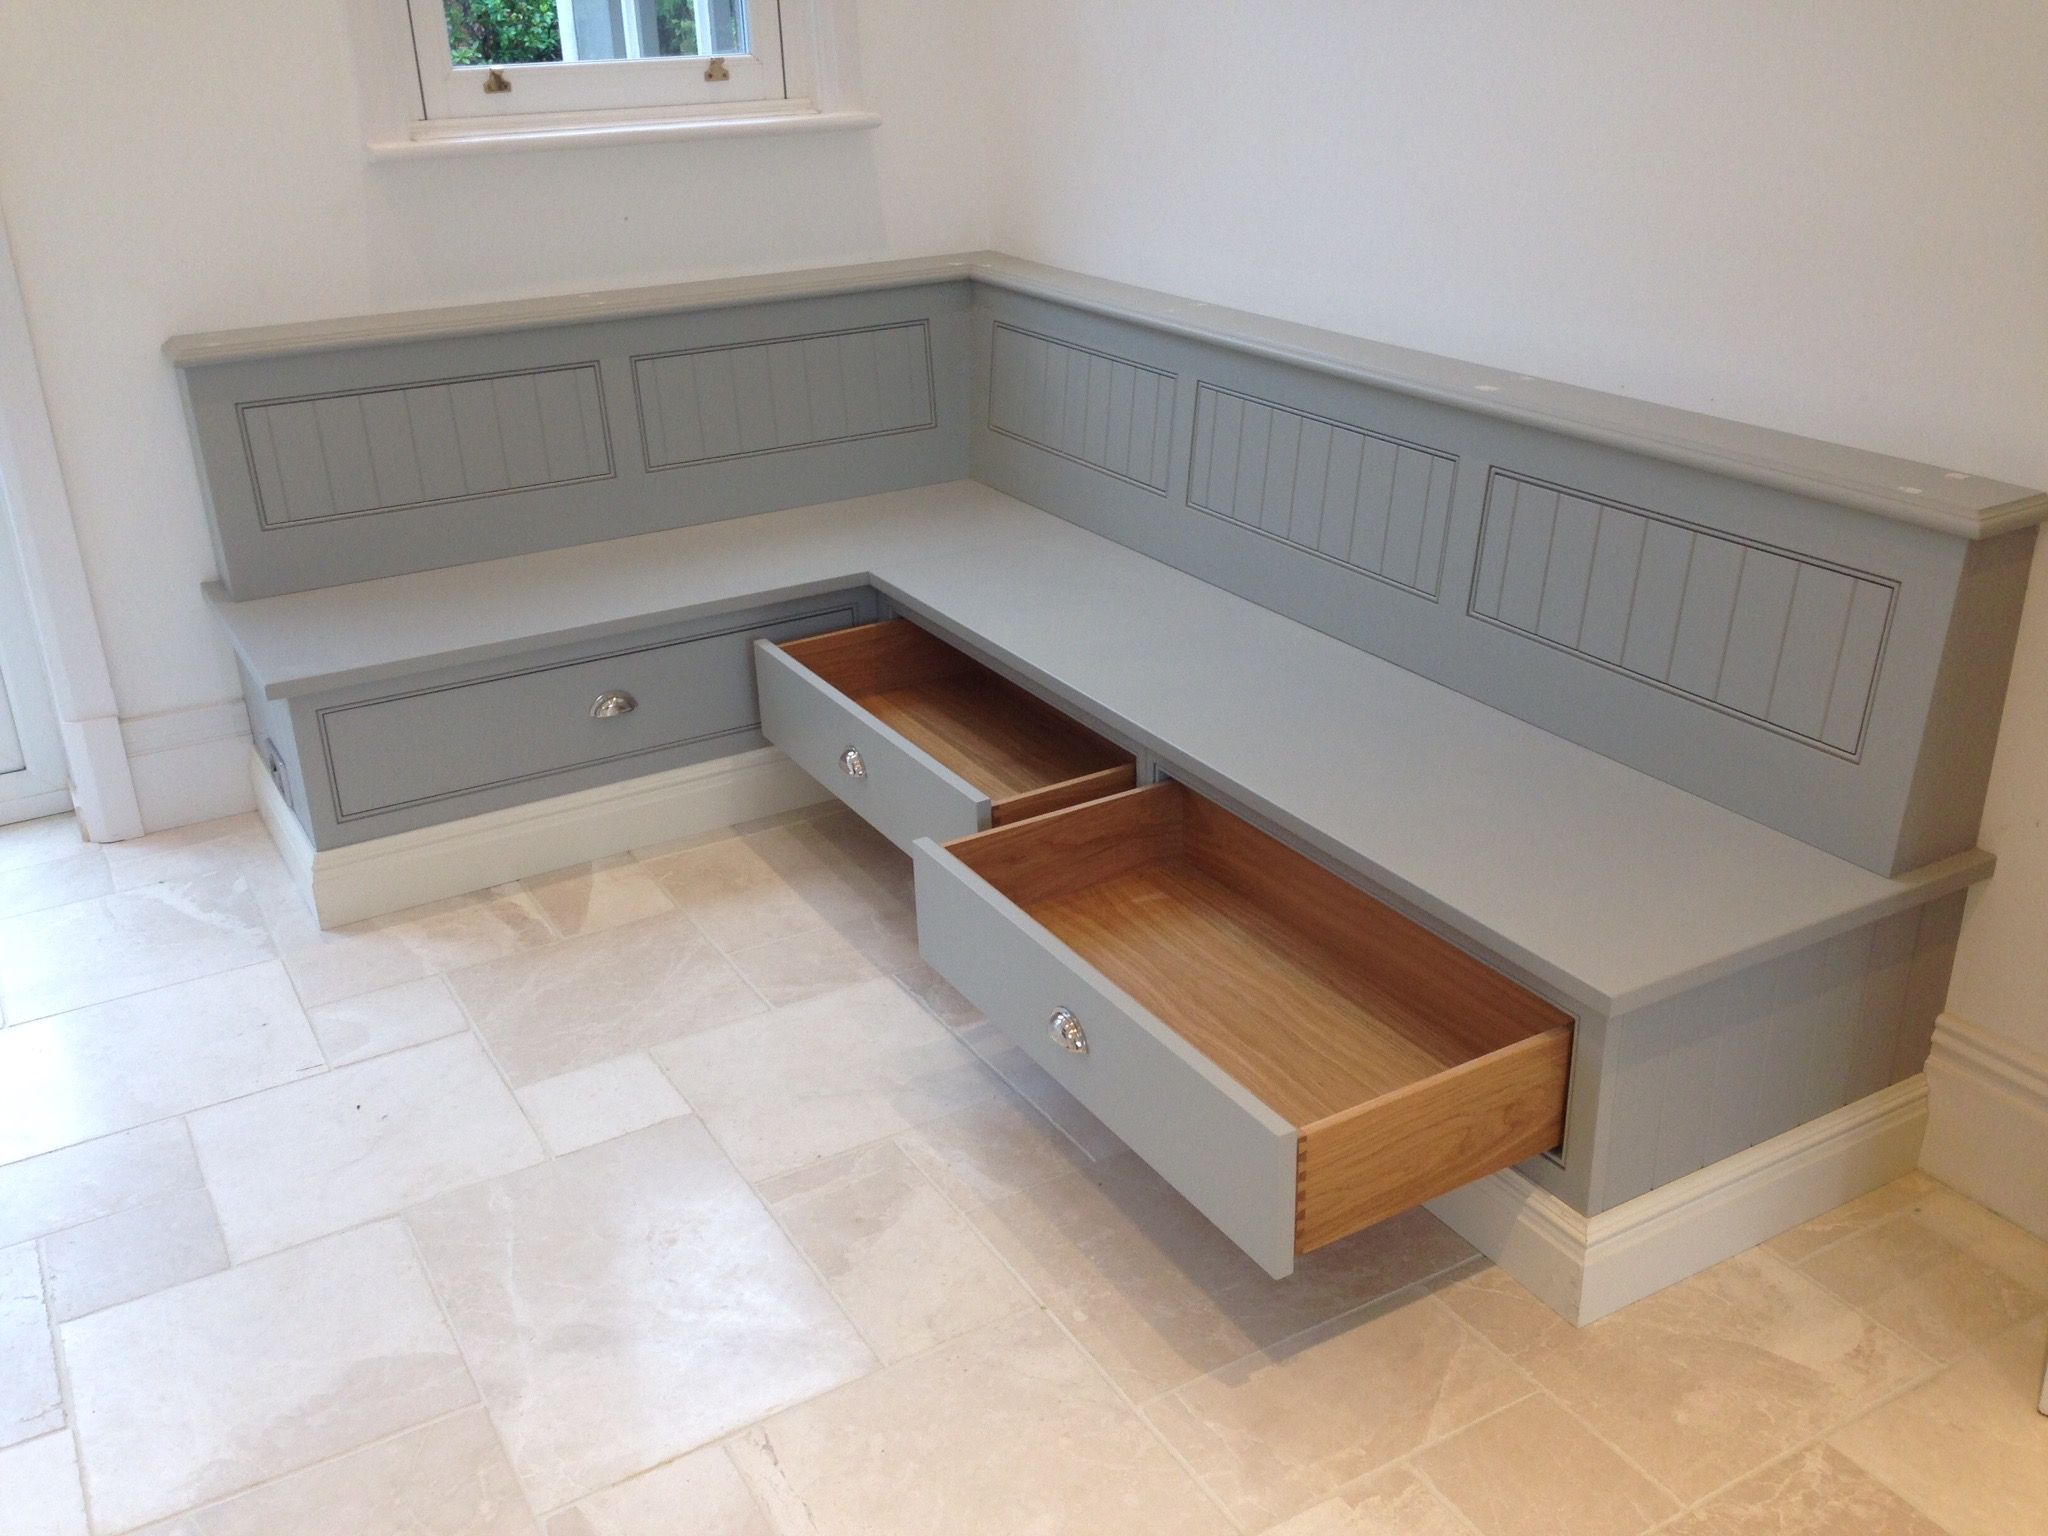 Image Result For Bench Seating Built In L Shaped Kitchen Bench